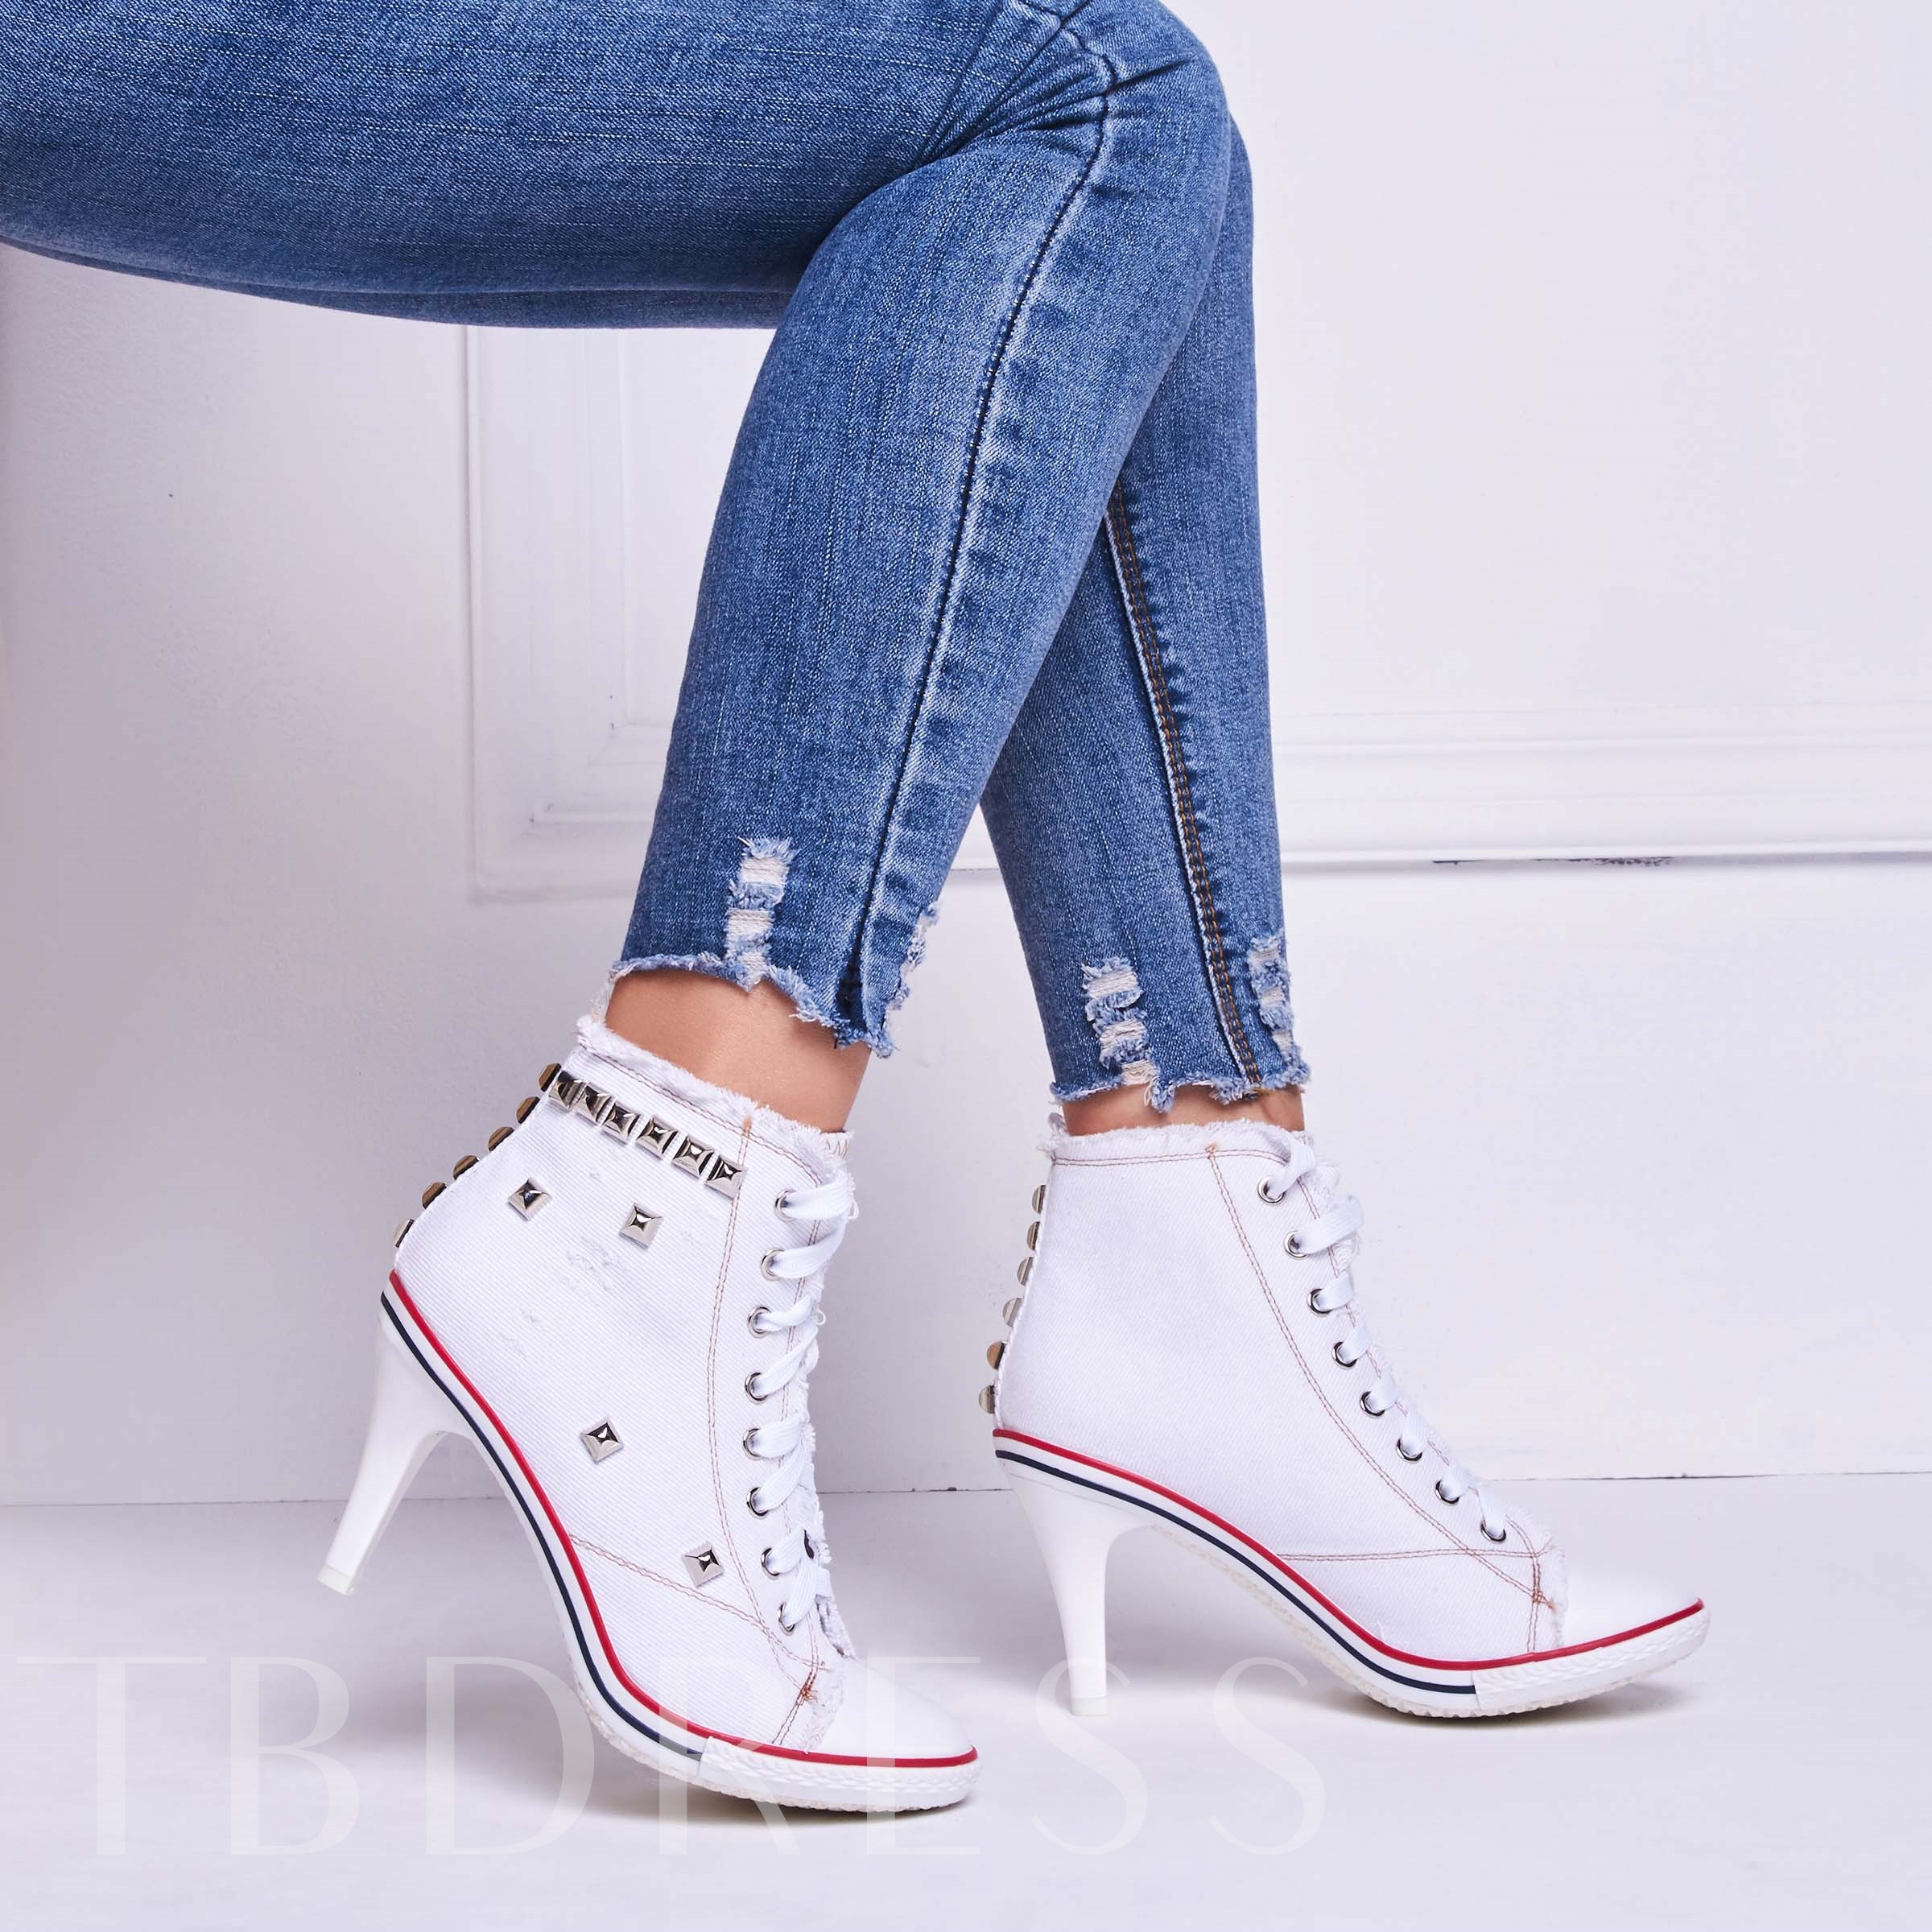 Rivet Plain Lace-Up Front Stiletto Heel Round Toe Ankle Women's Boots